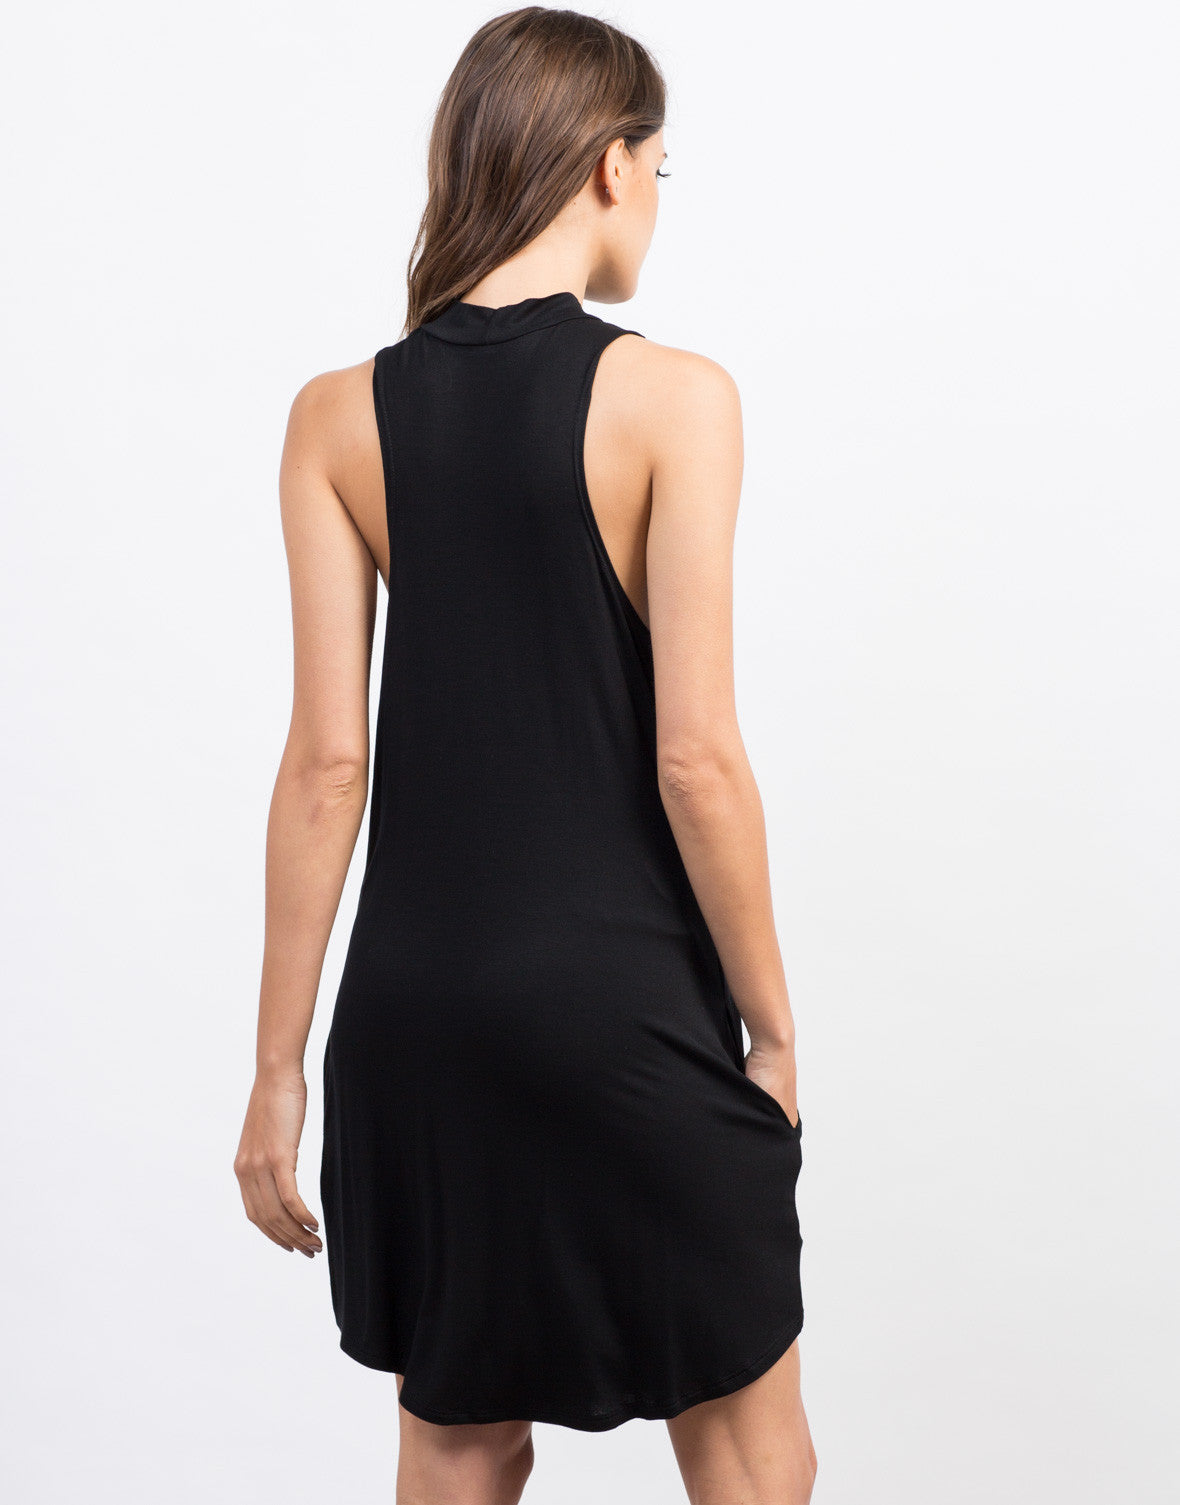 Back View of Flowy Mock Neck Day Dress